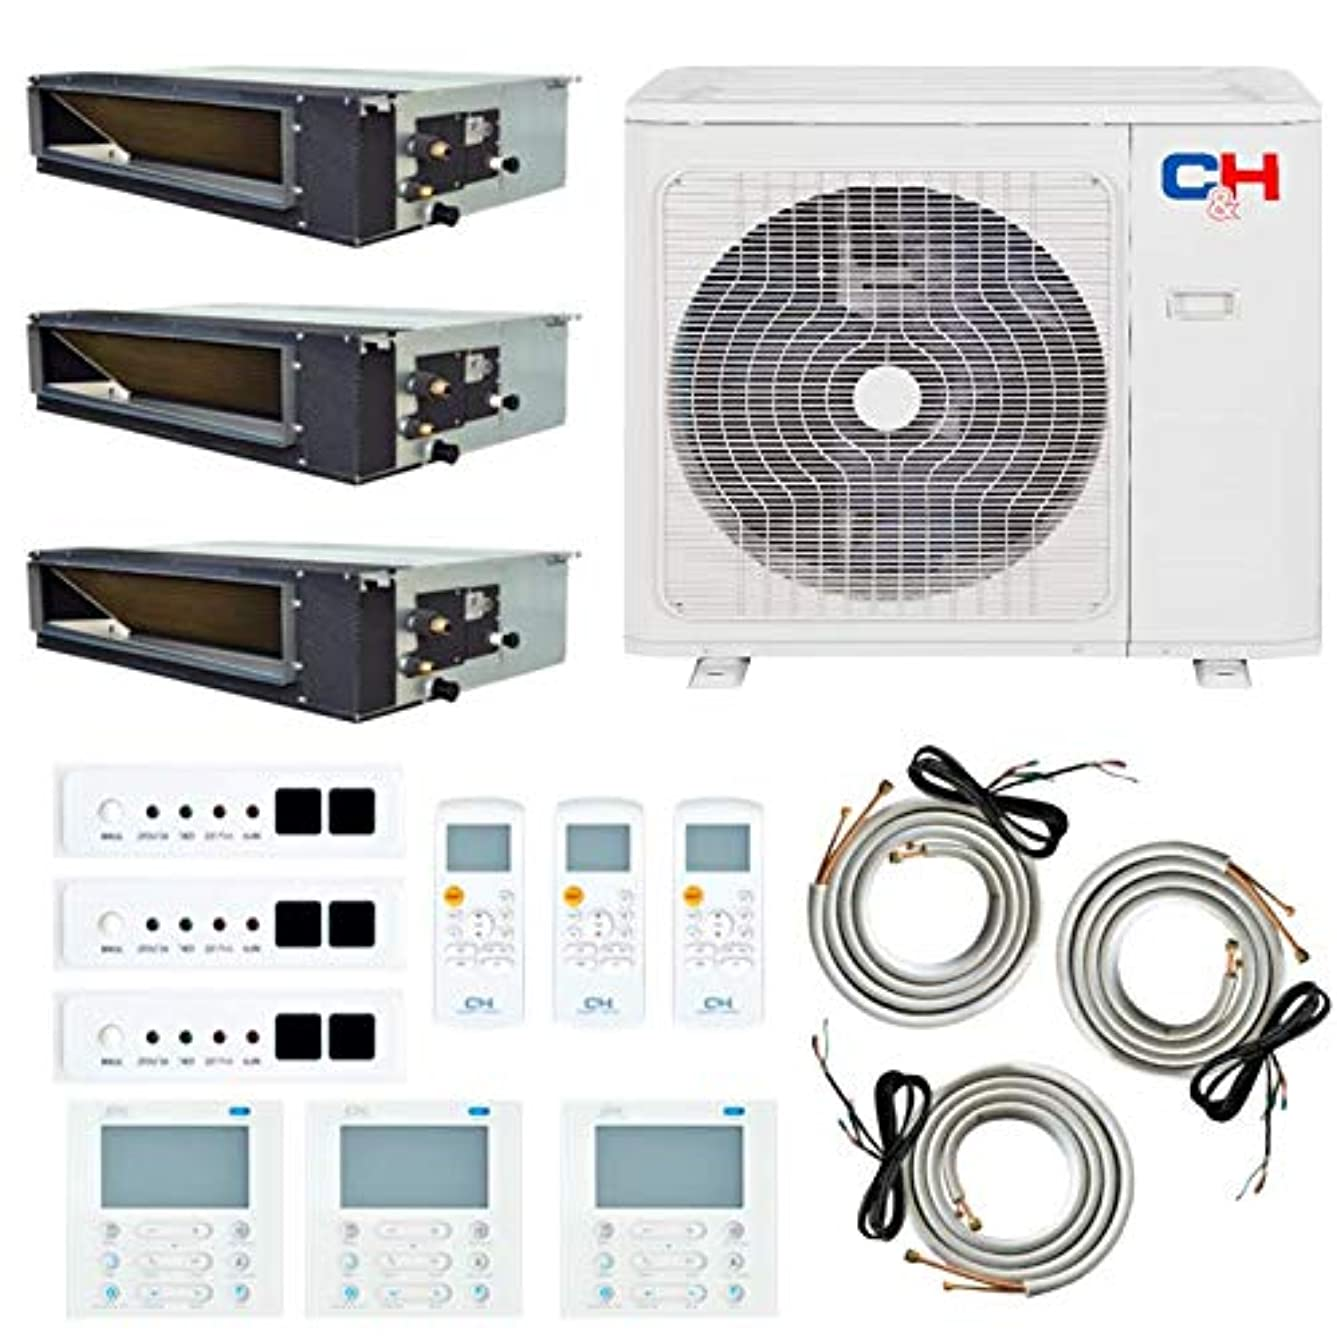 Multi Zone Dual 2 Zone 18000 18000 Concealed Duct Mini Split Air Conditioner and Heat Pump